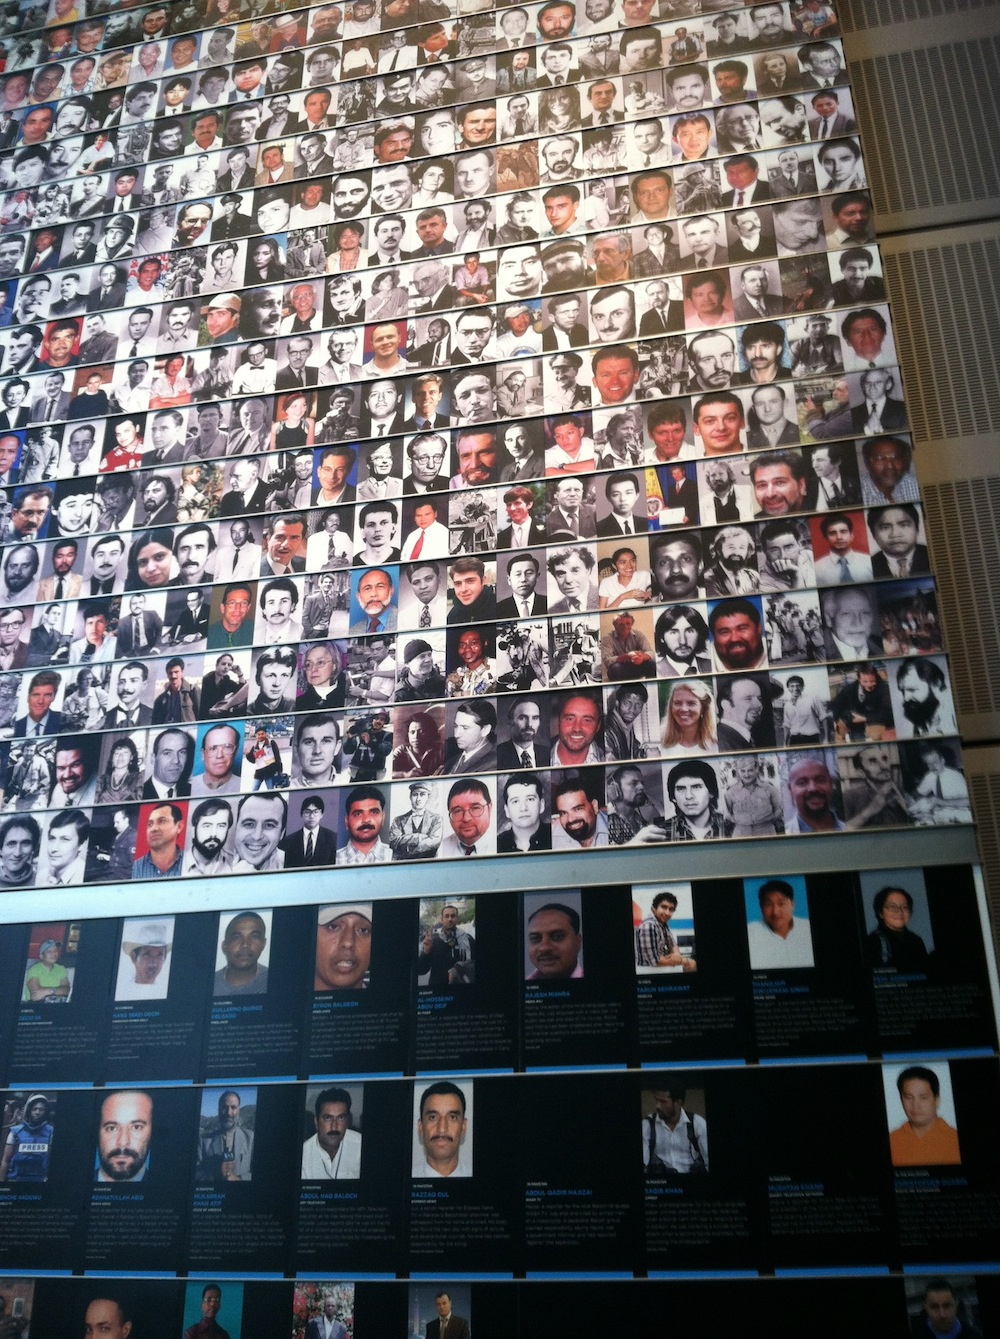 Memorial wall, photos of journalists who have died in pursuit of the story